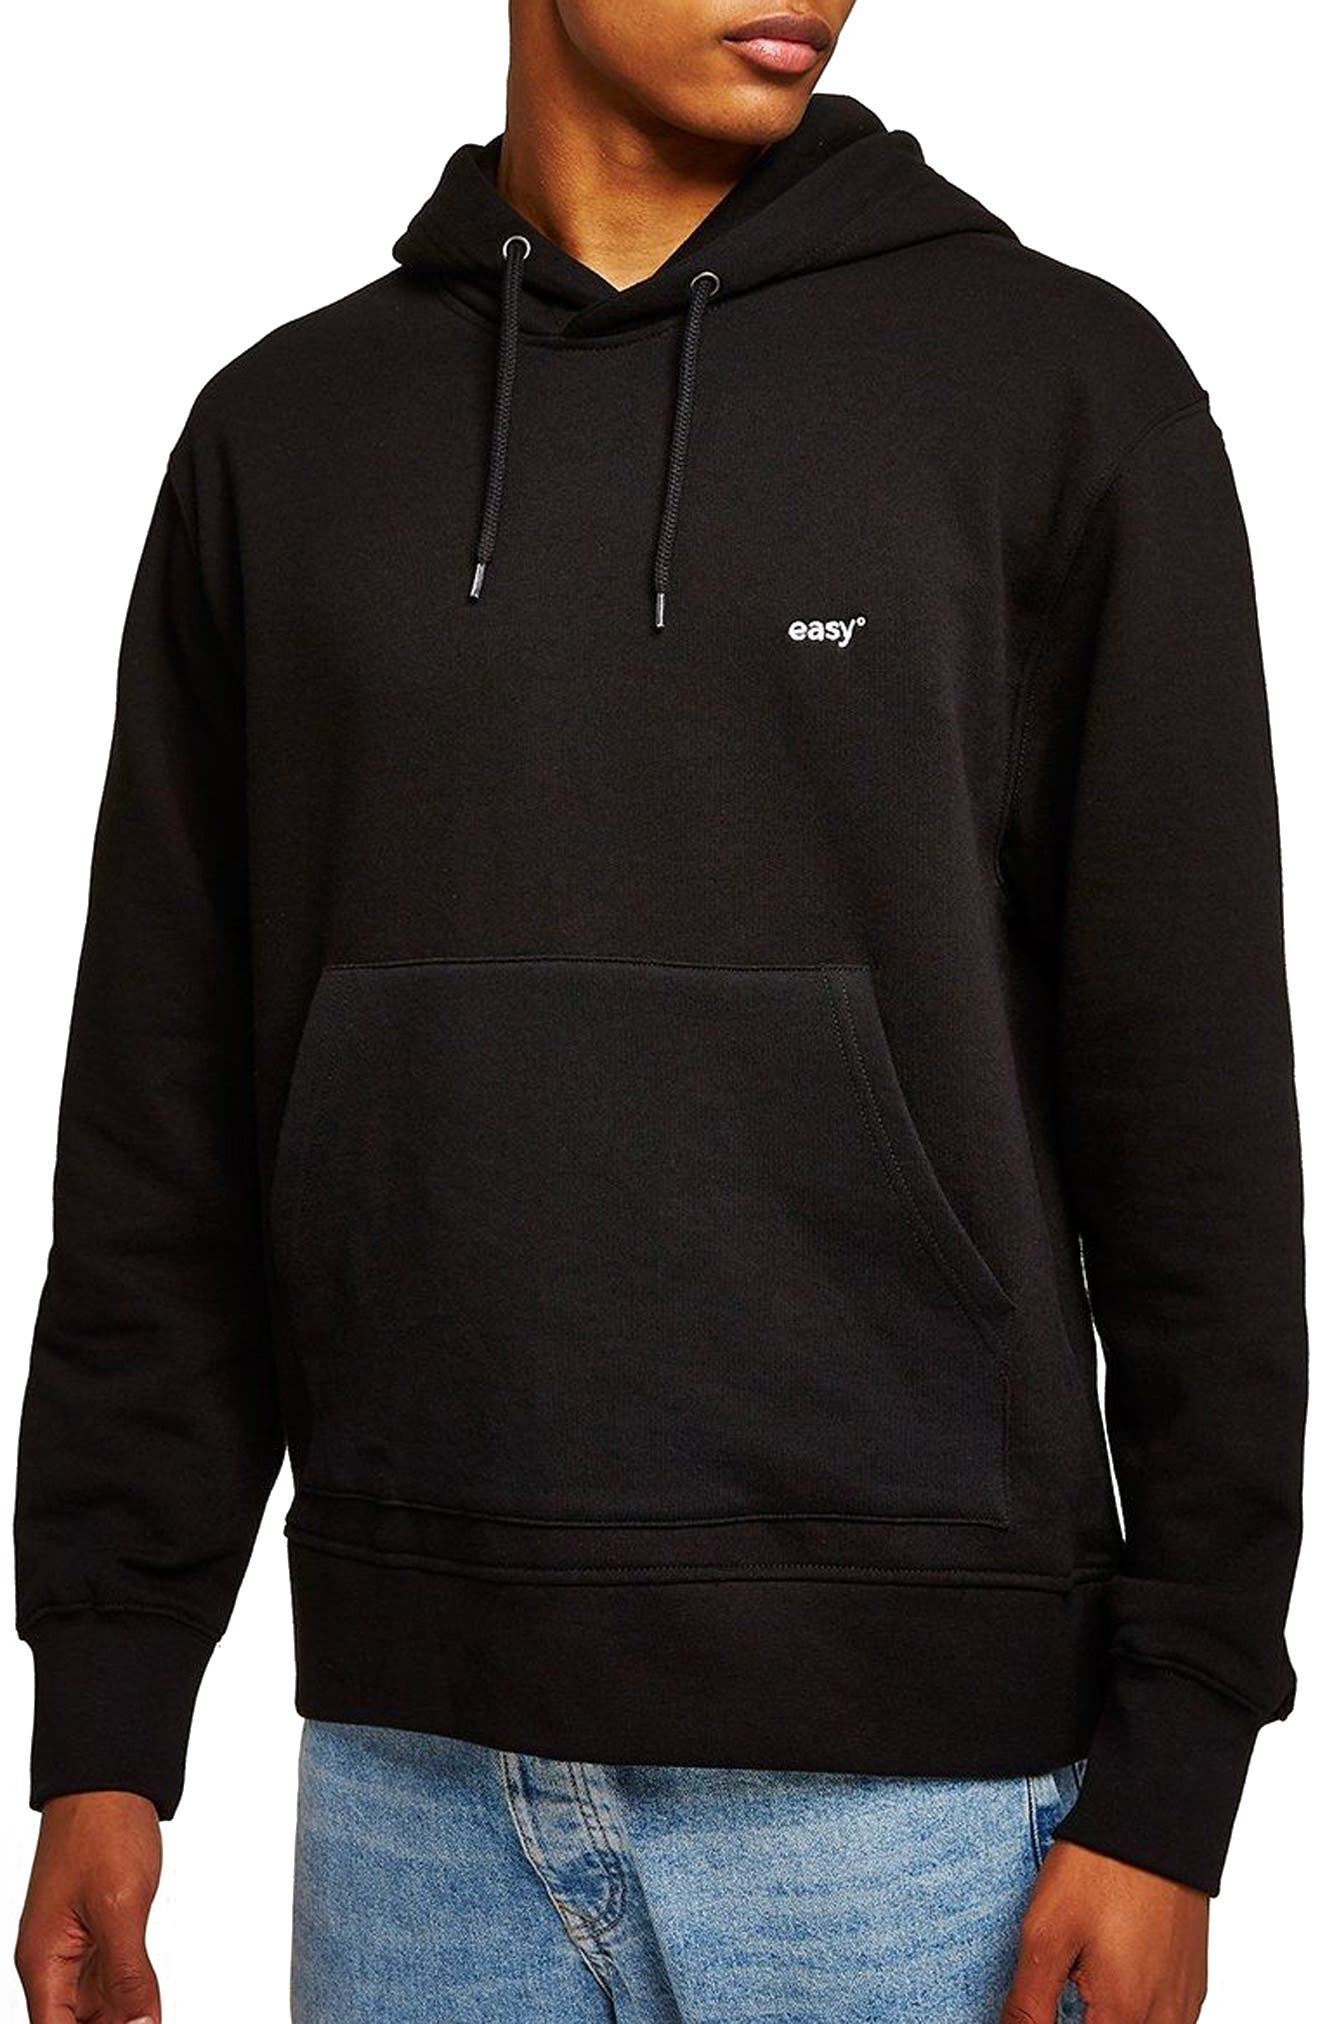 Classic Fit Tristan Easy Embroidered Hoodie,                         Main,                         color, Black Multi